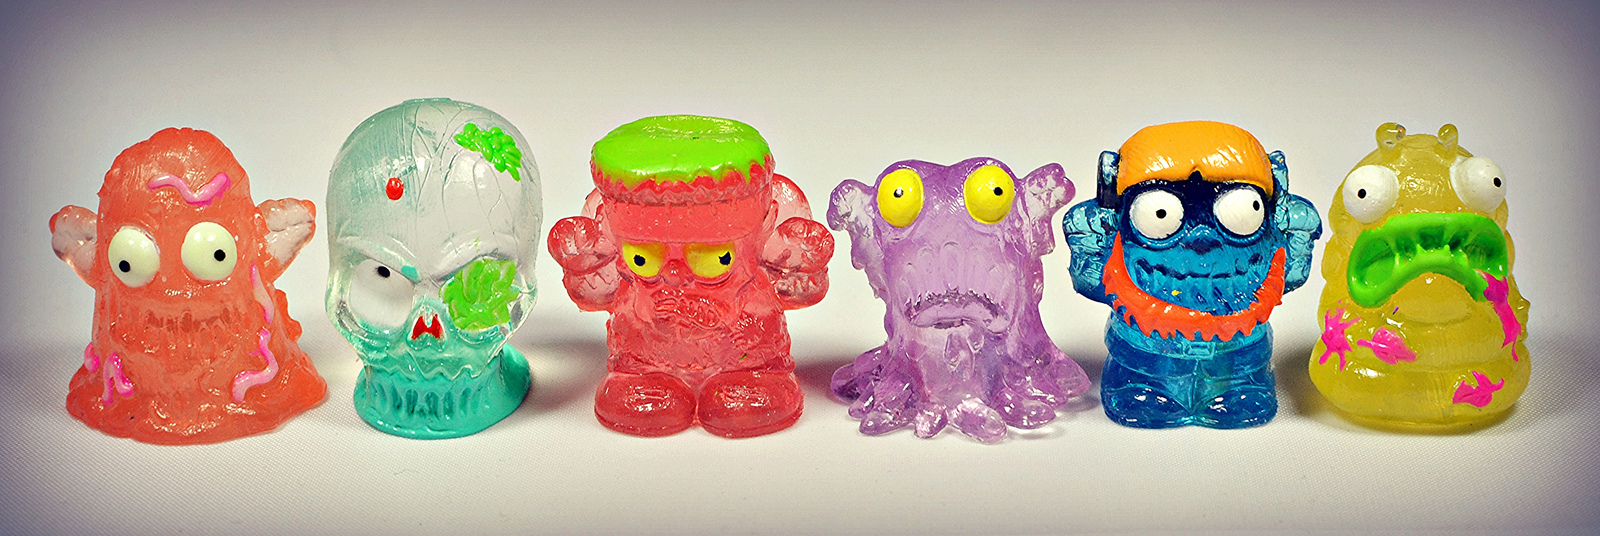 Liceplant One Of The Trashors Monsters From Galoob S Trash Bag Bunch Toys